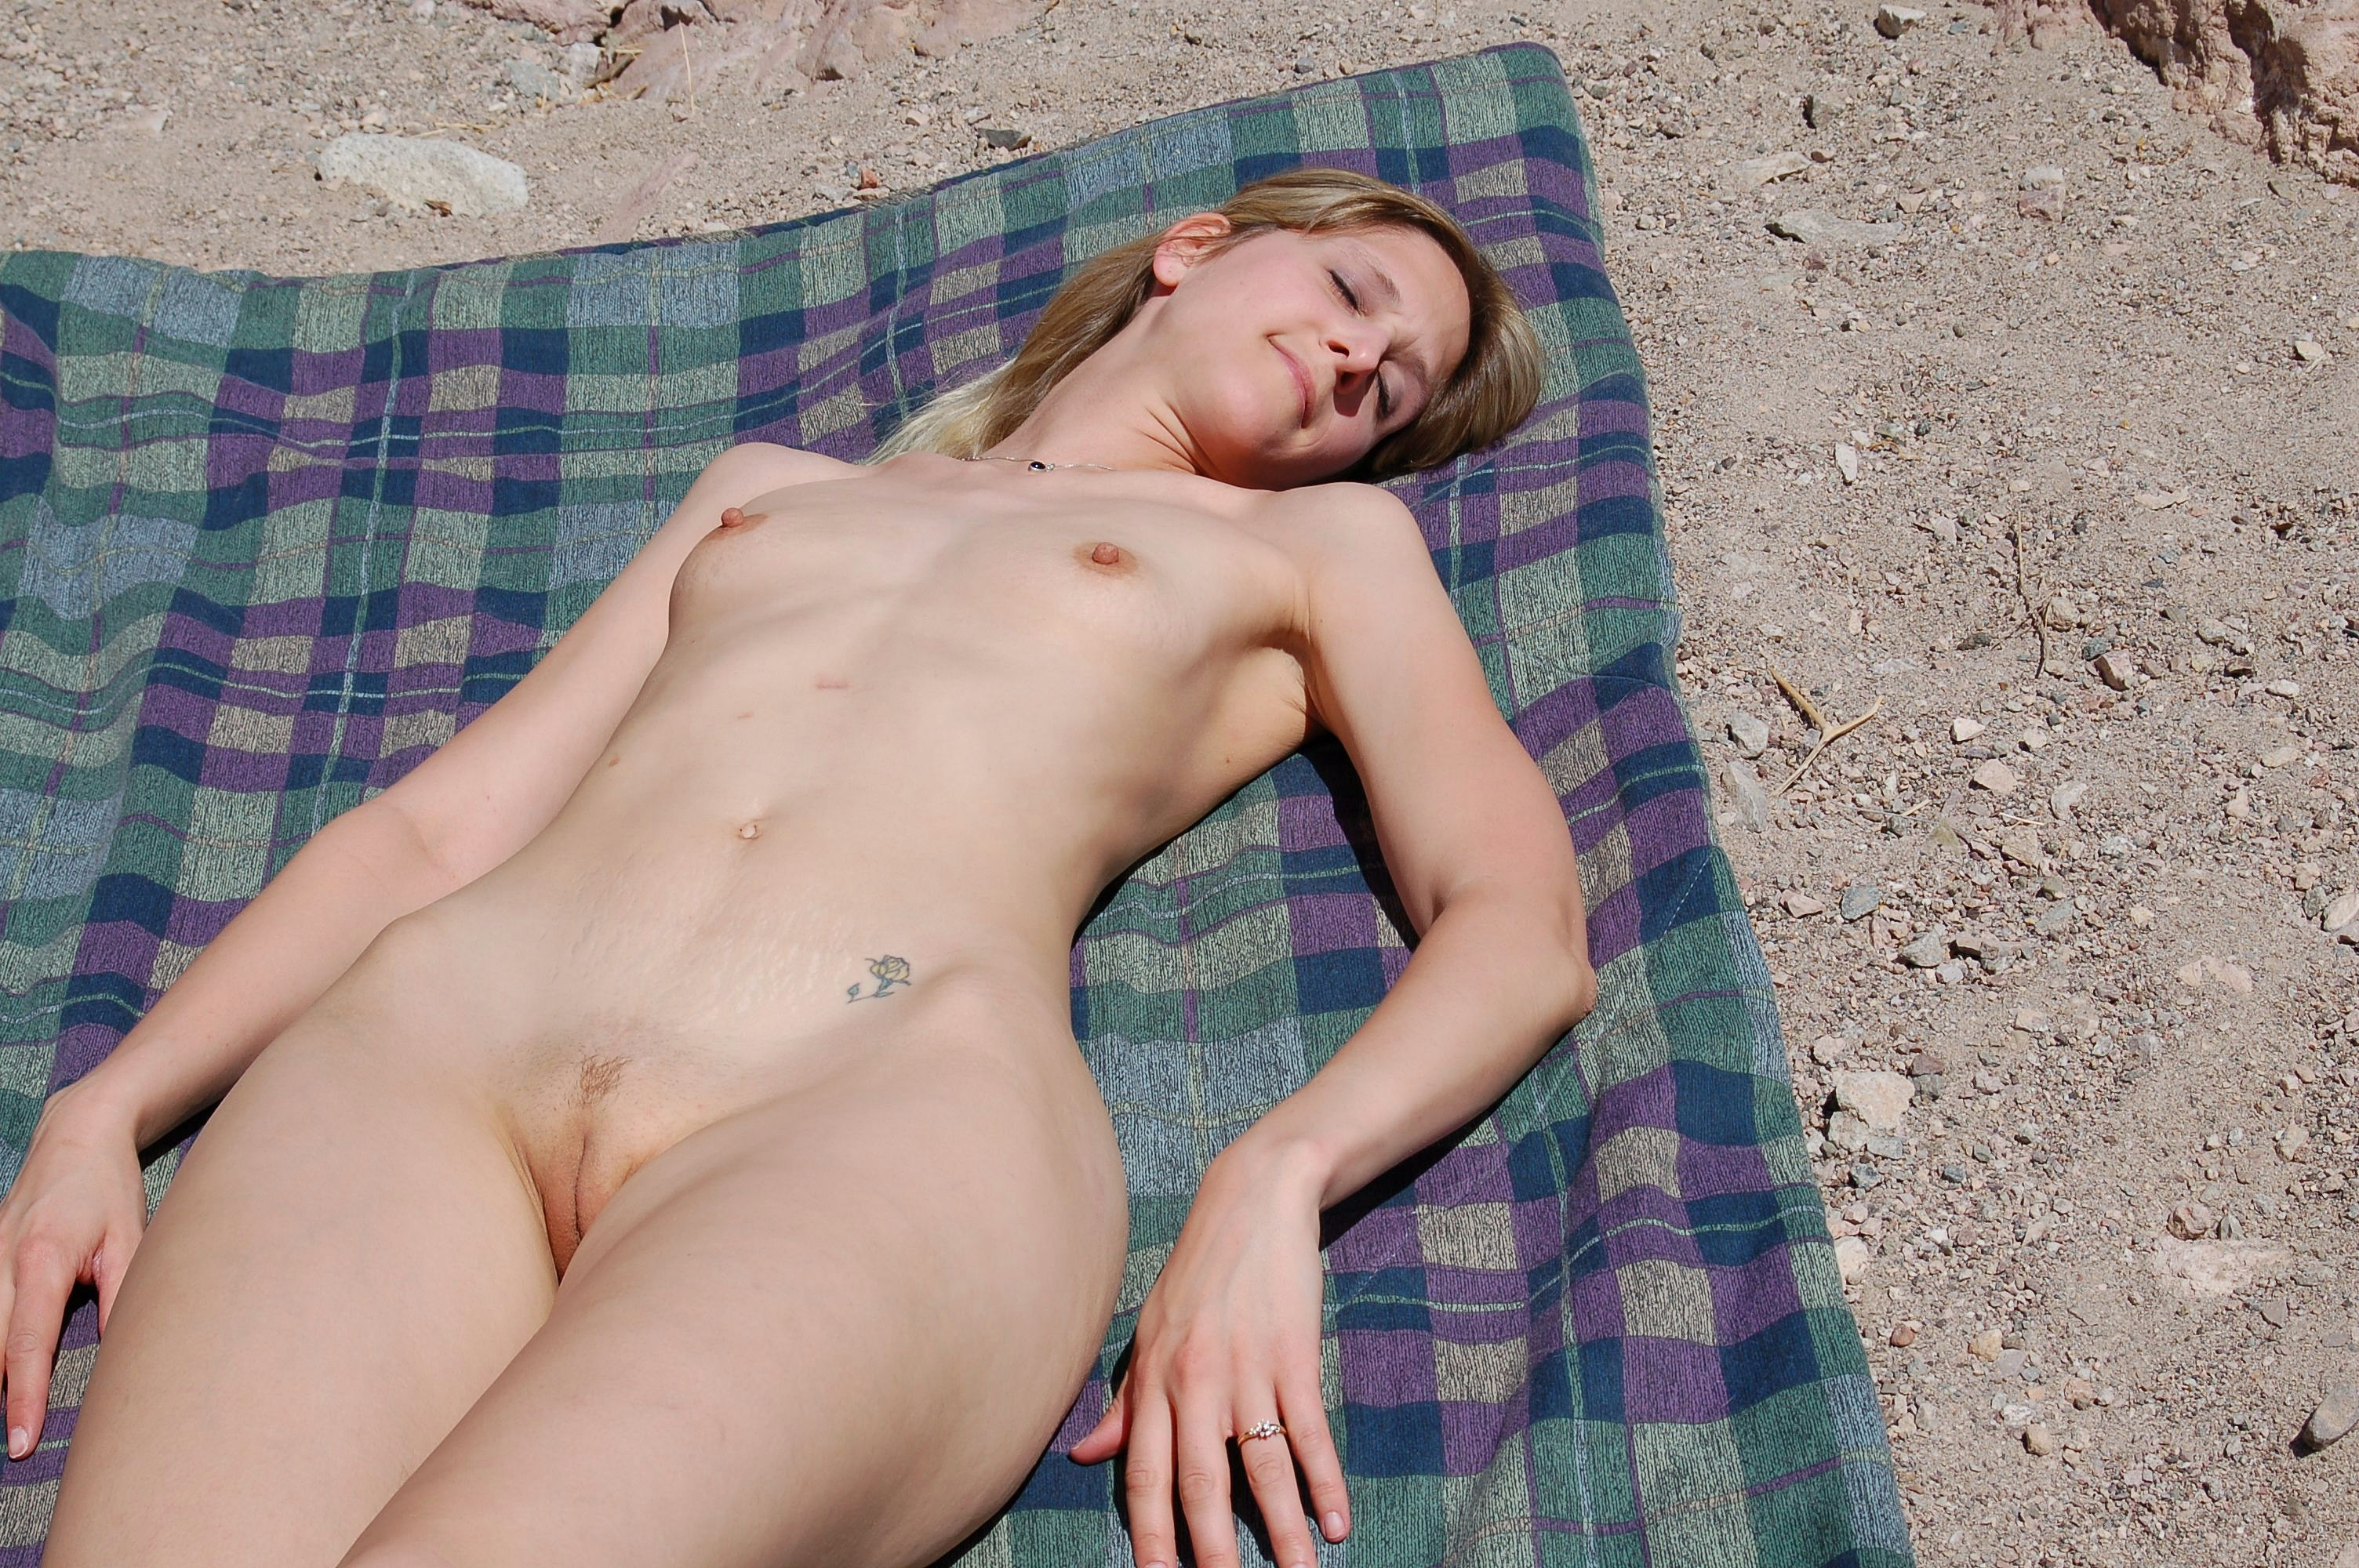 What, women nude sun bathing